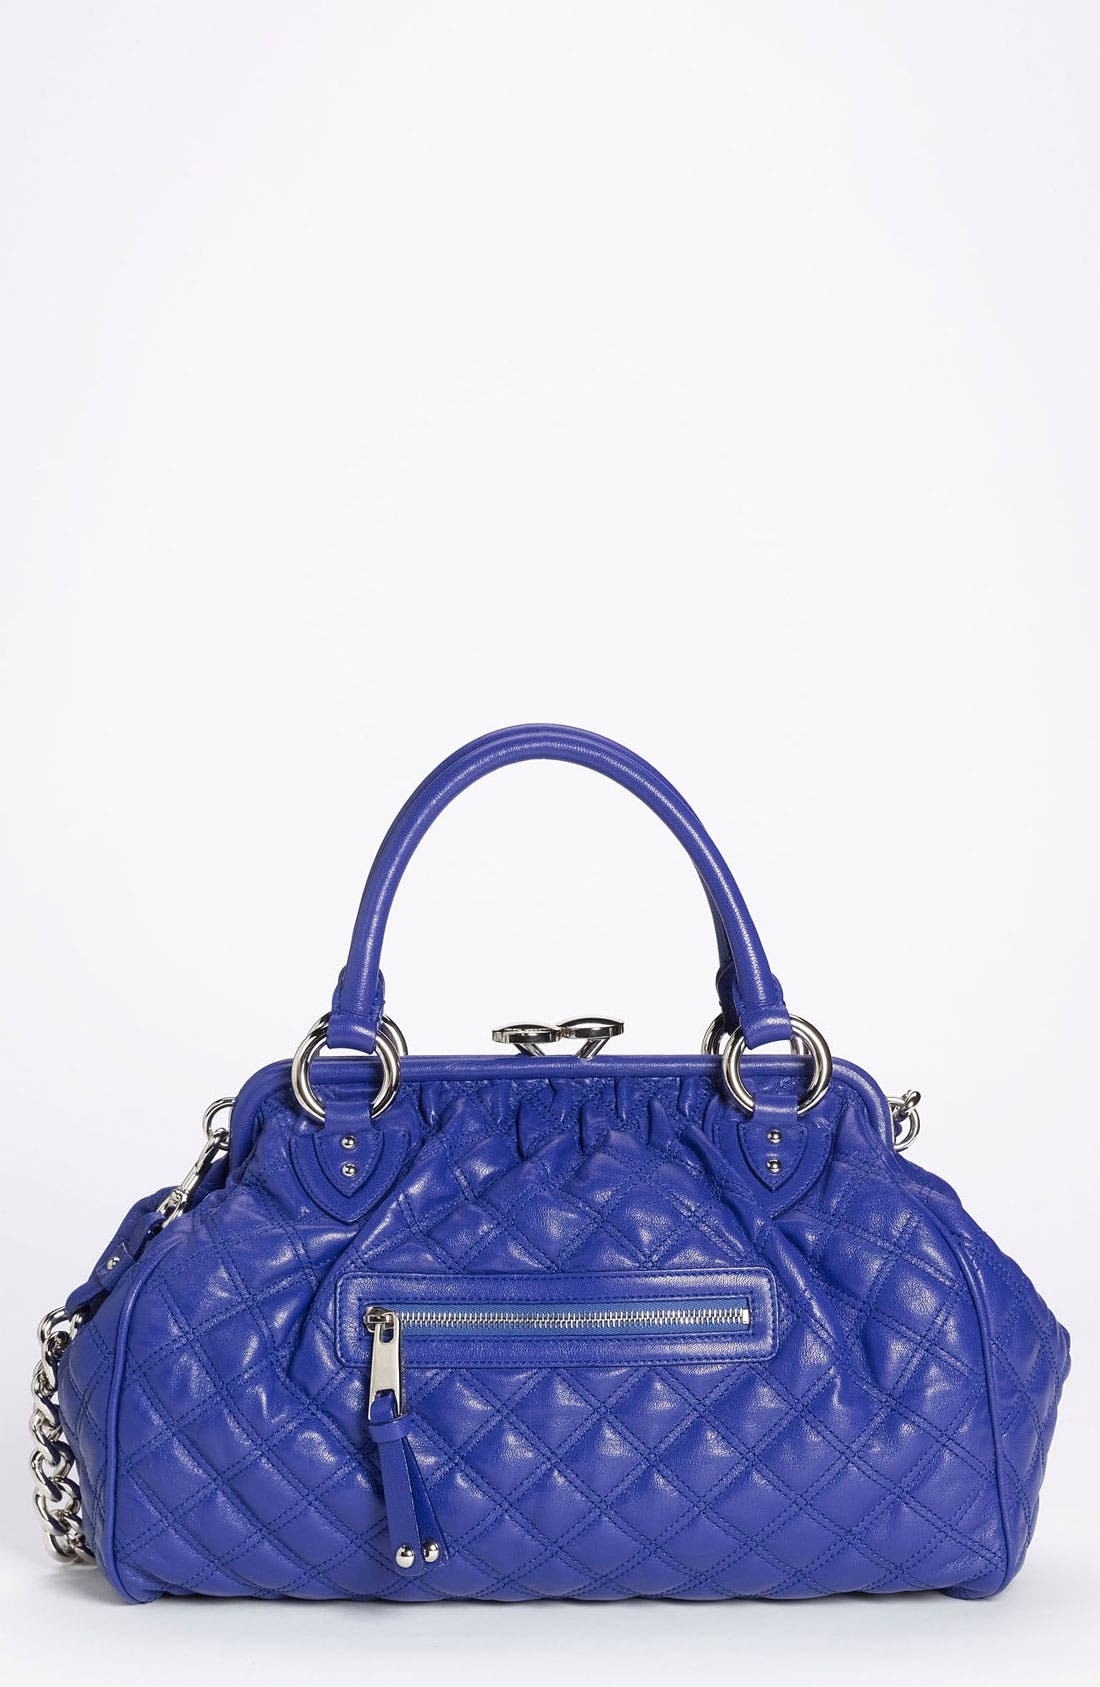 Alternate Image 1 Selected - MARC JACOBS 'Quilting Stam' Leather Satchel